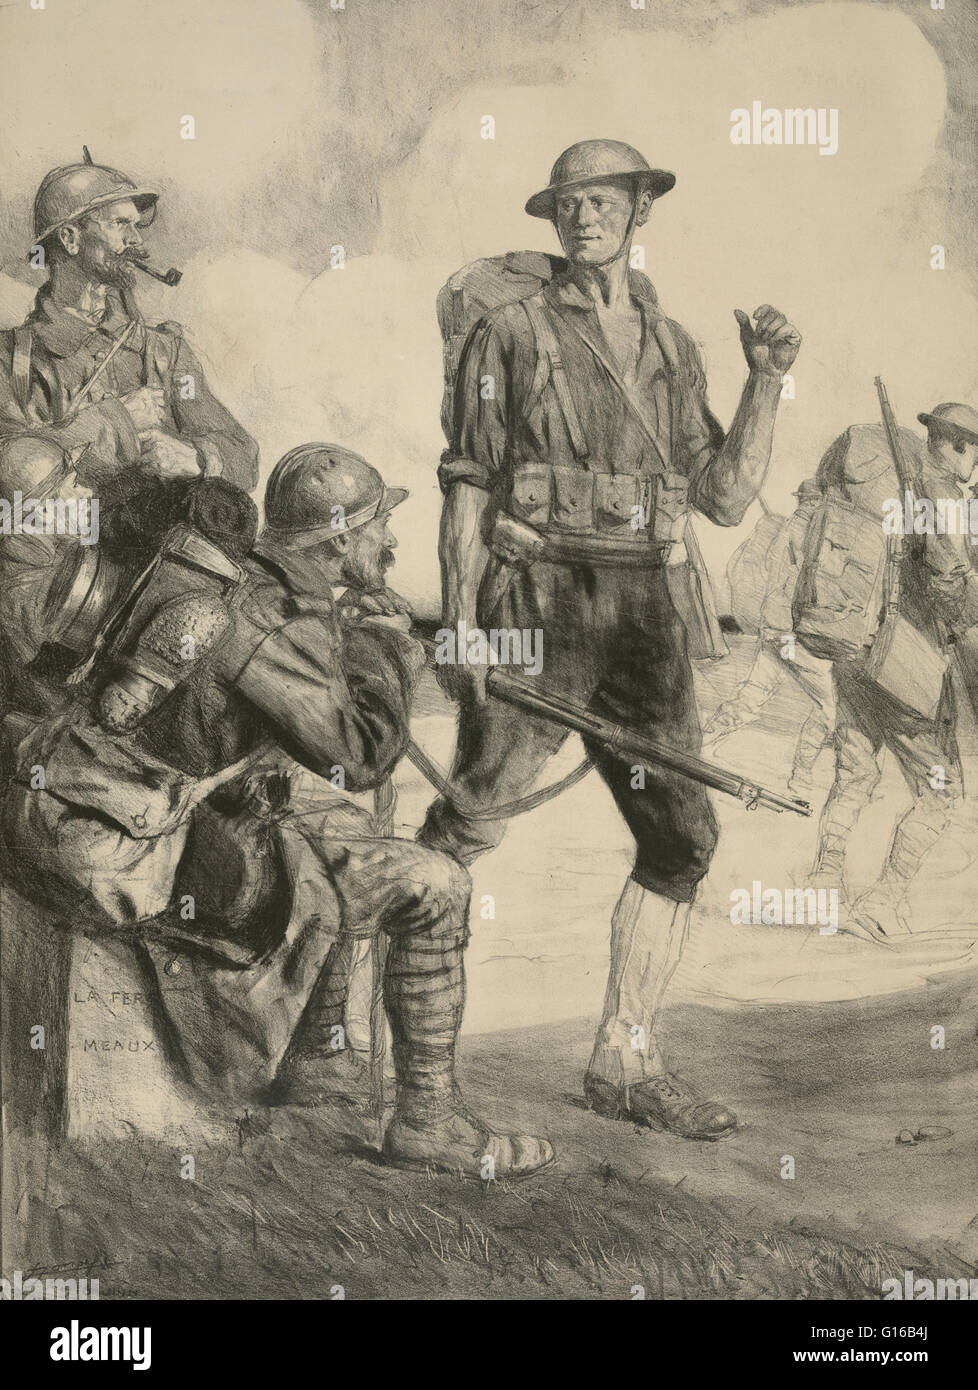 Sketch Of An American Soldier Talking With Allied Soldiers In France